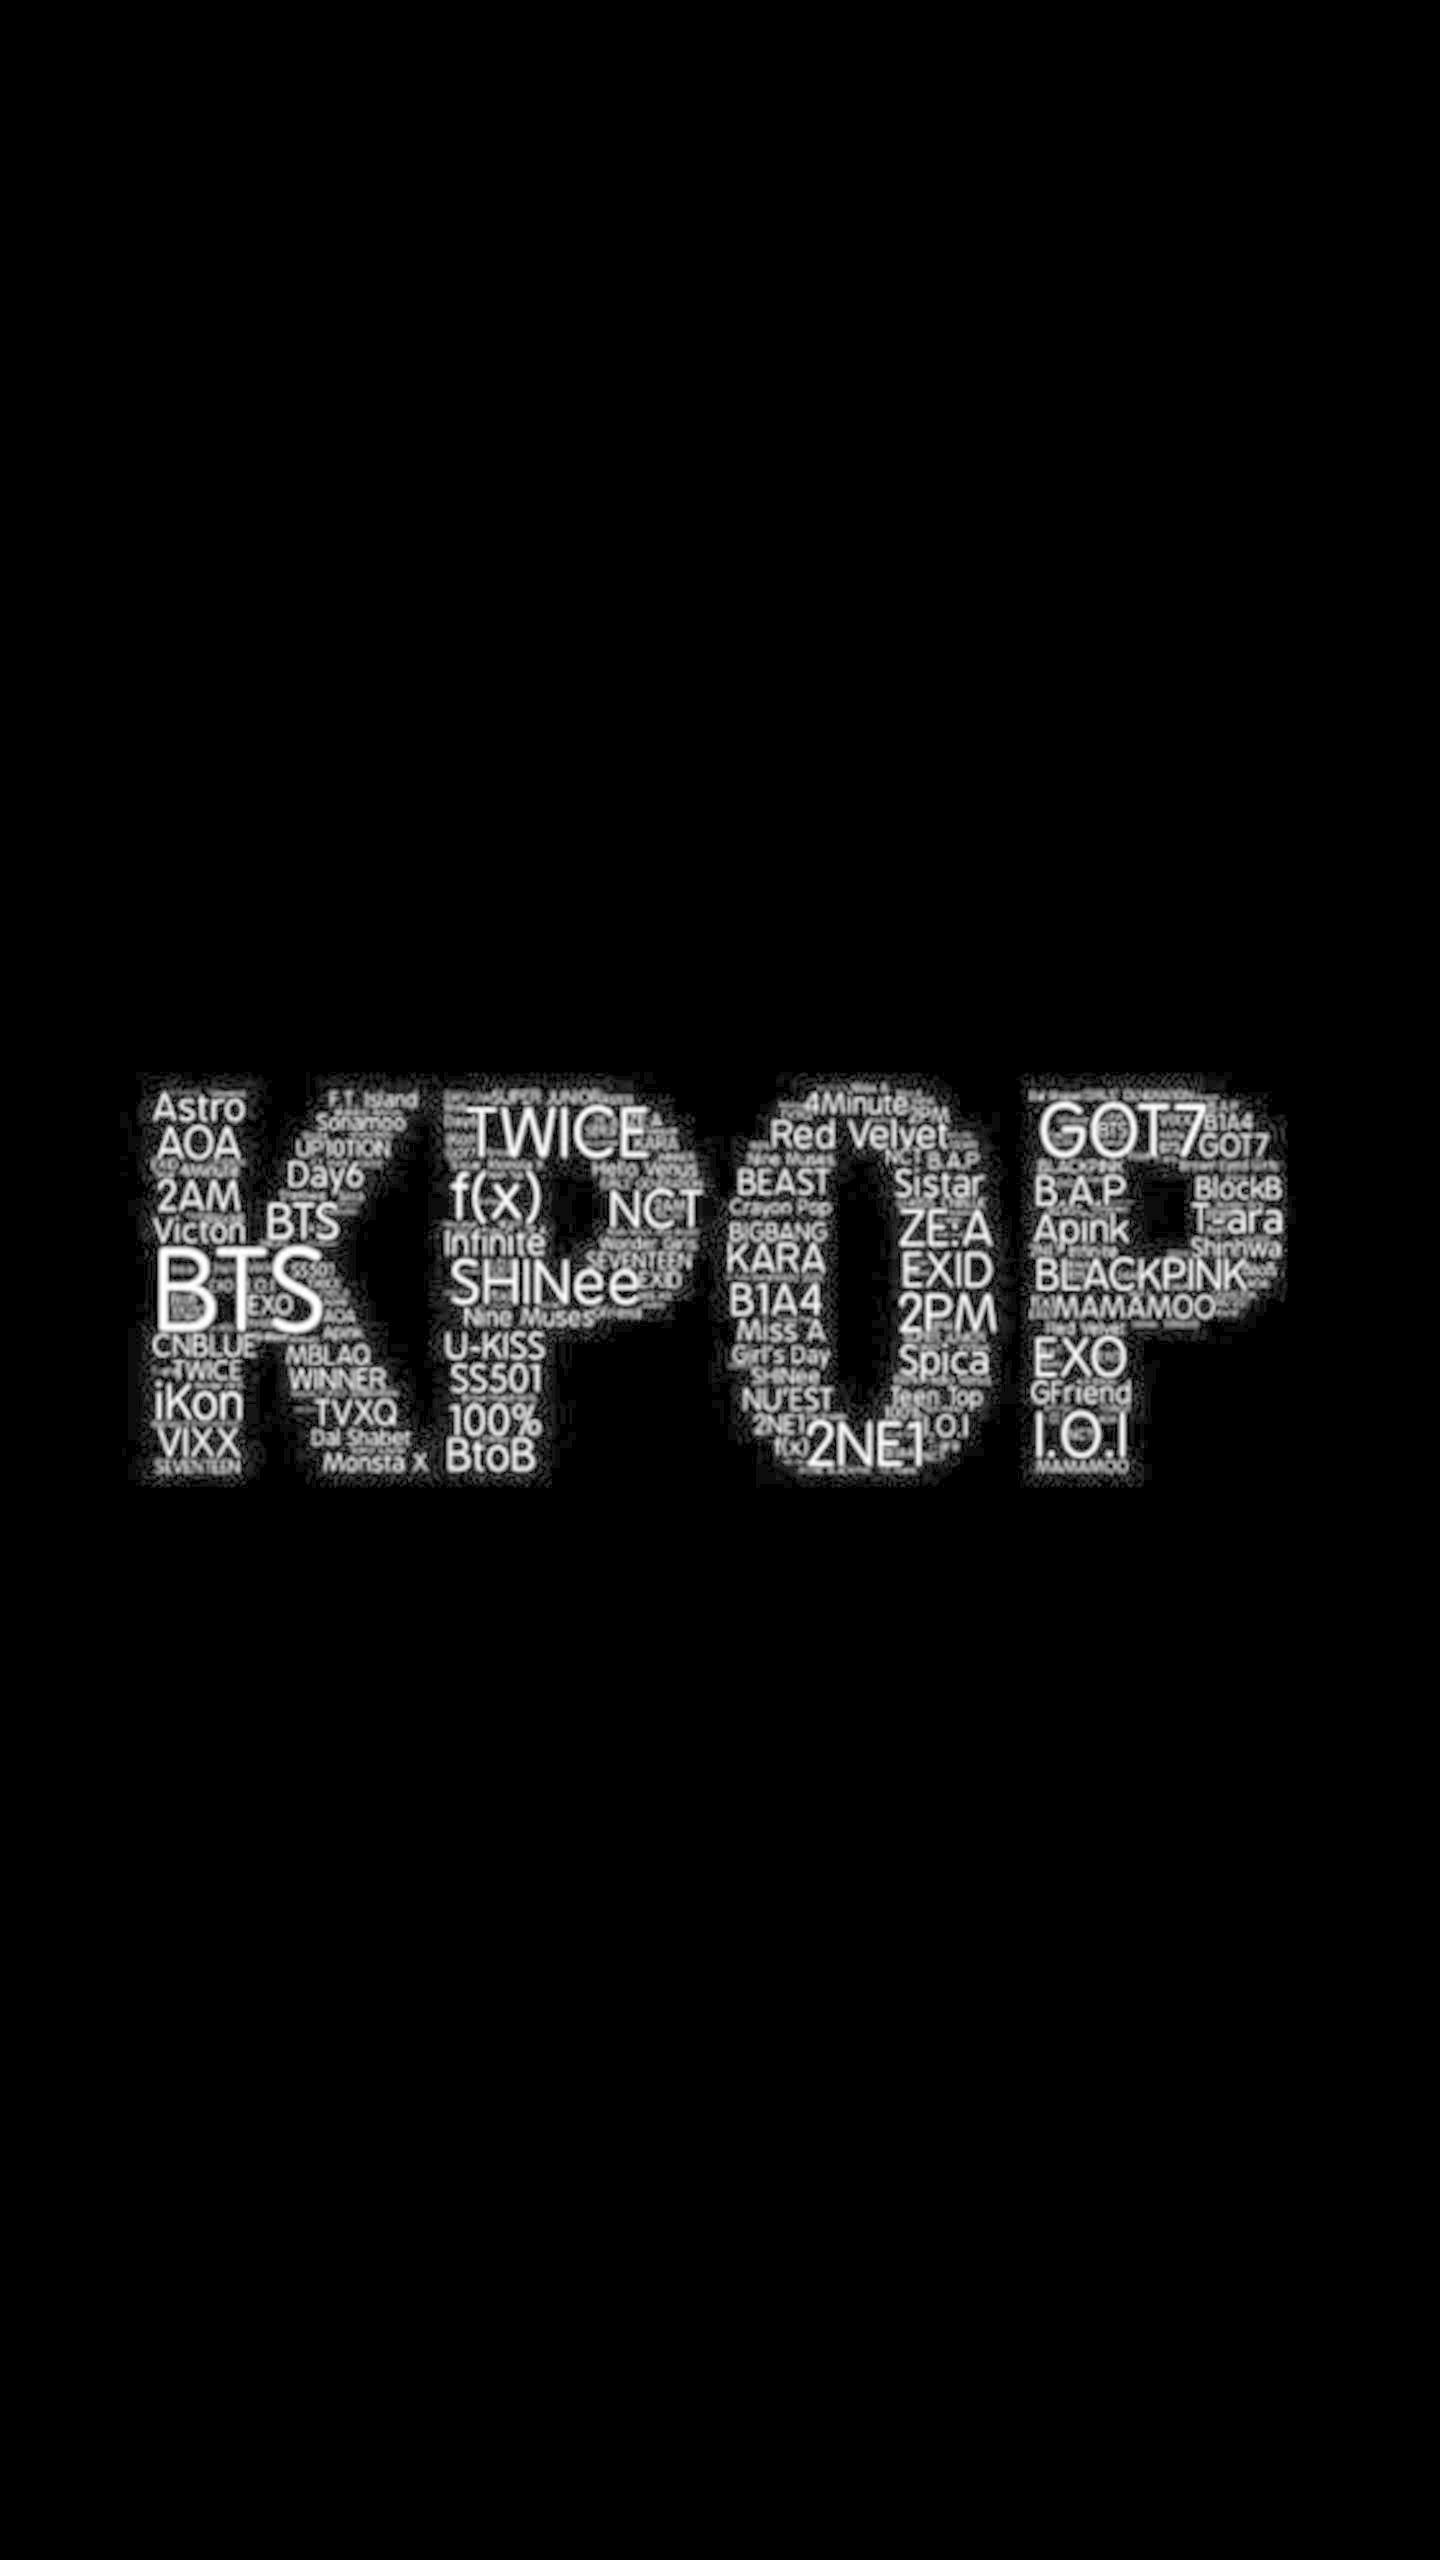 Kpop Wallpapers For Android Apk Download